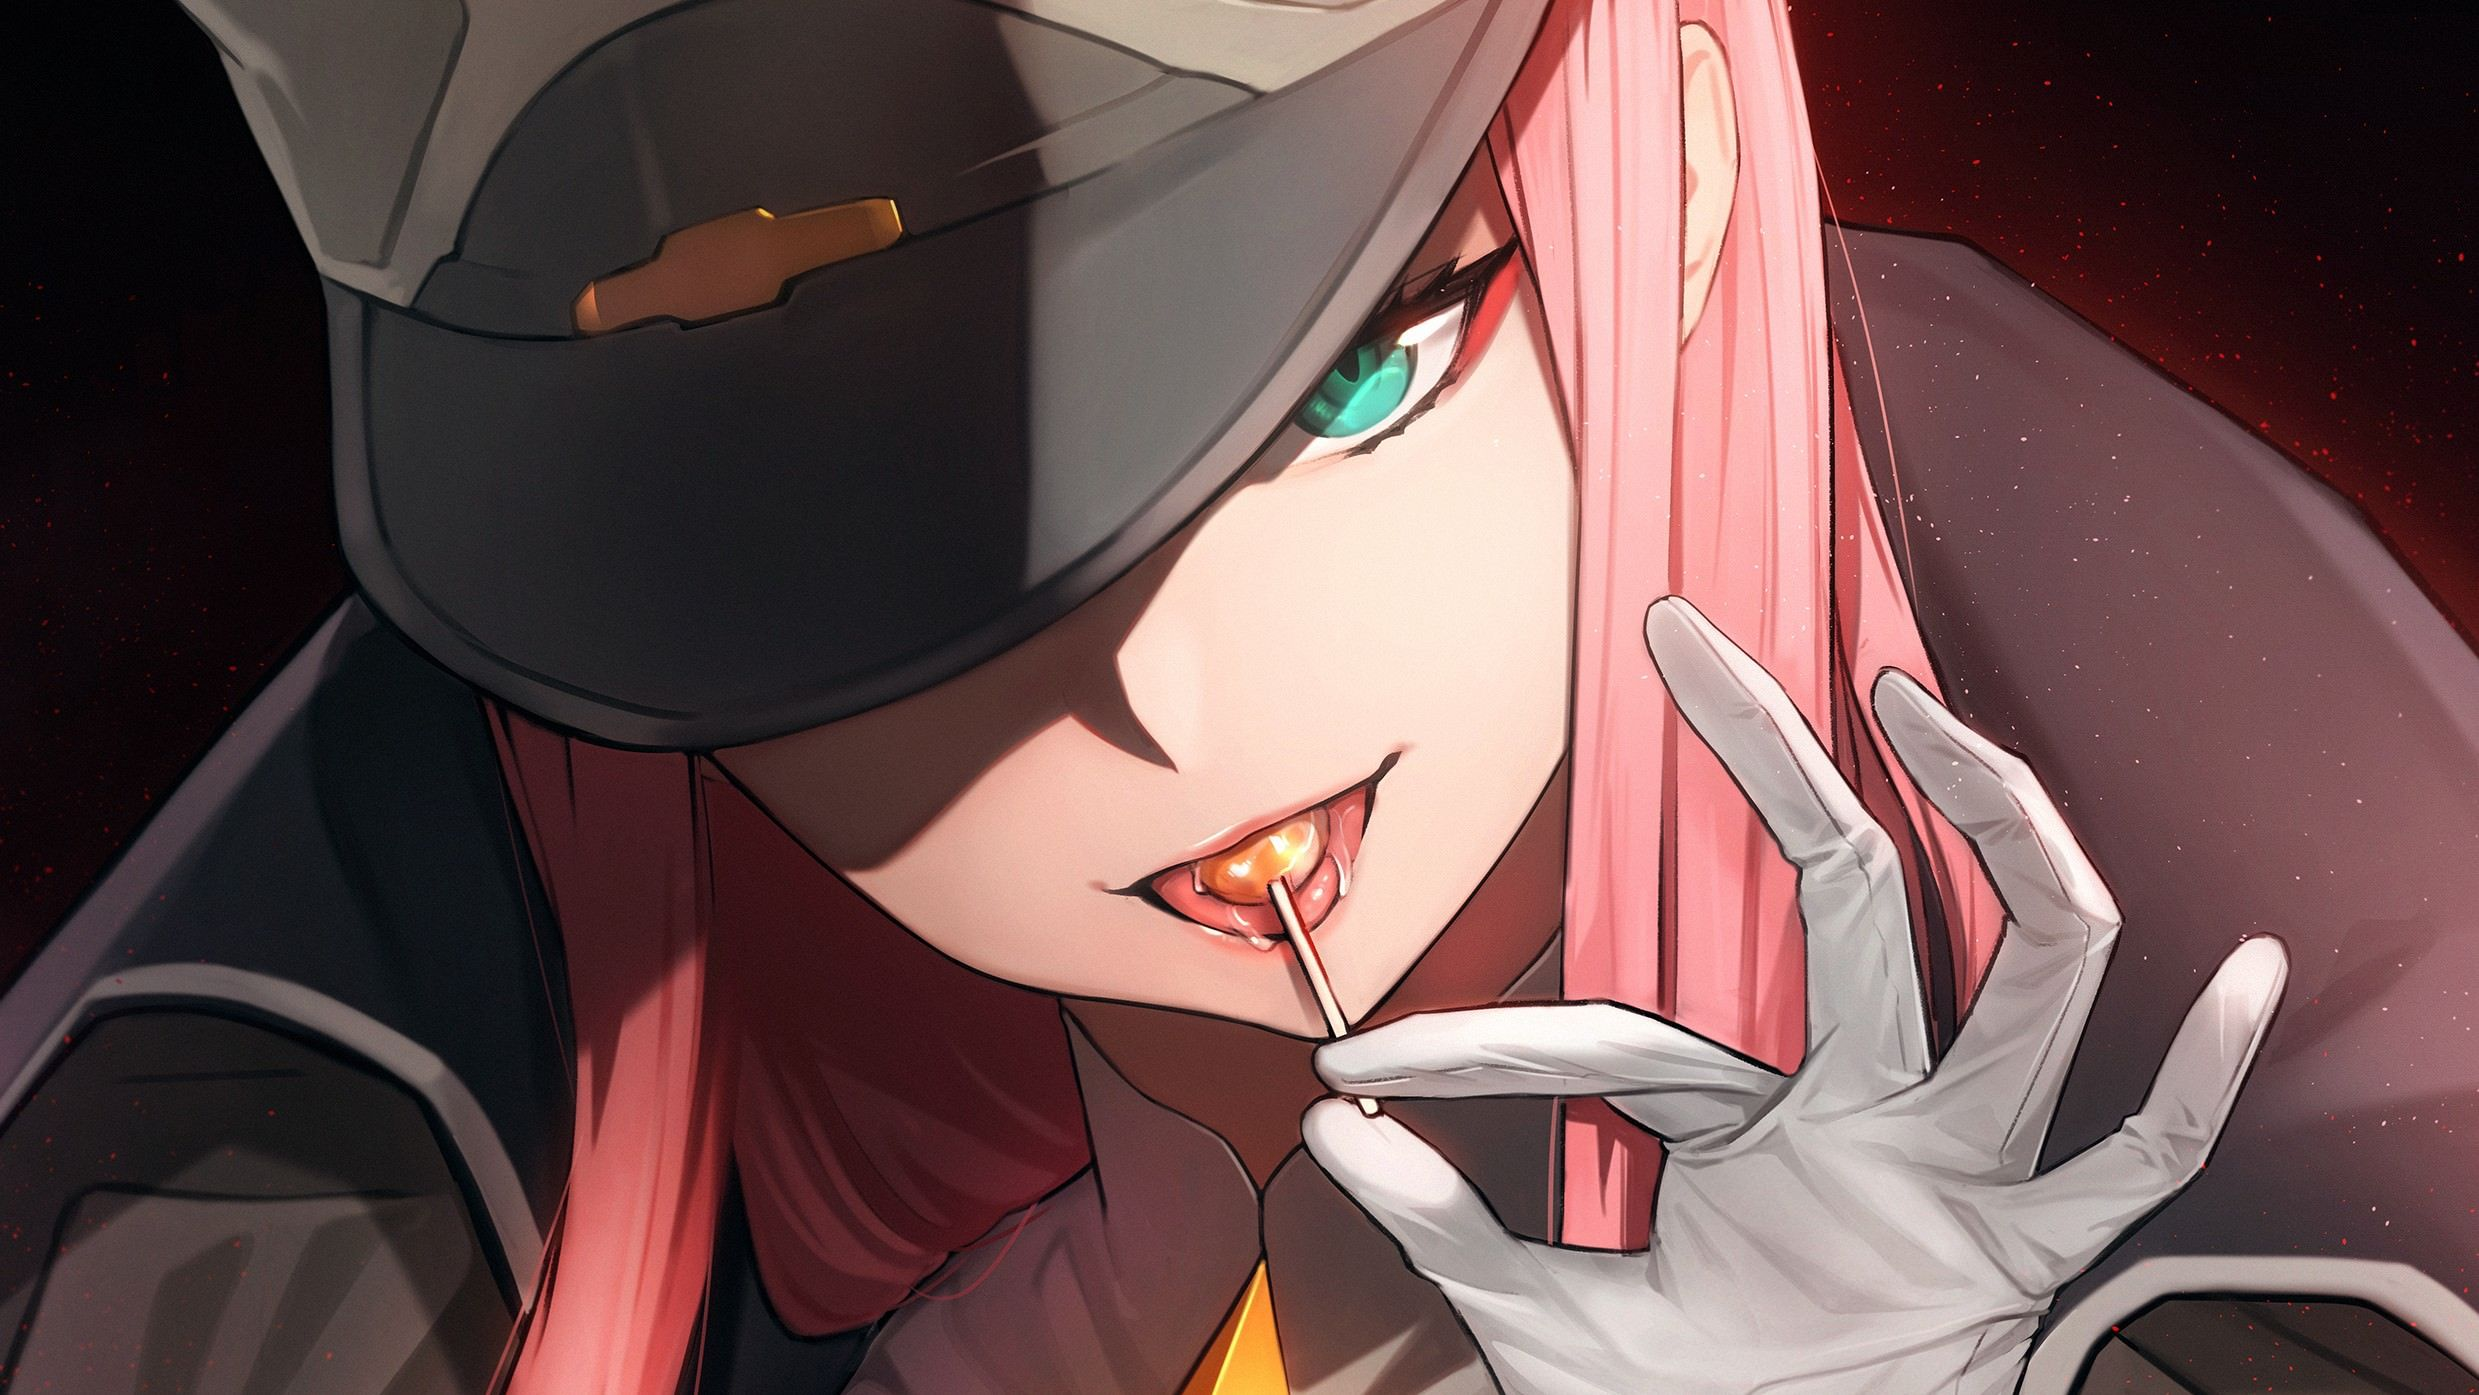 Zero Two Wallpapers - Top Free Zero Two Backgrounds ...